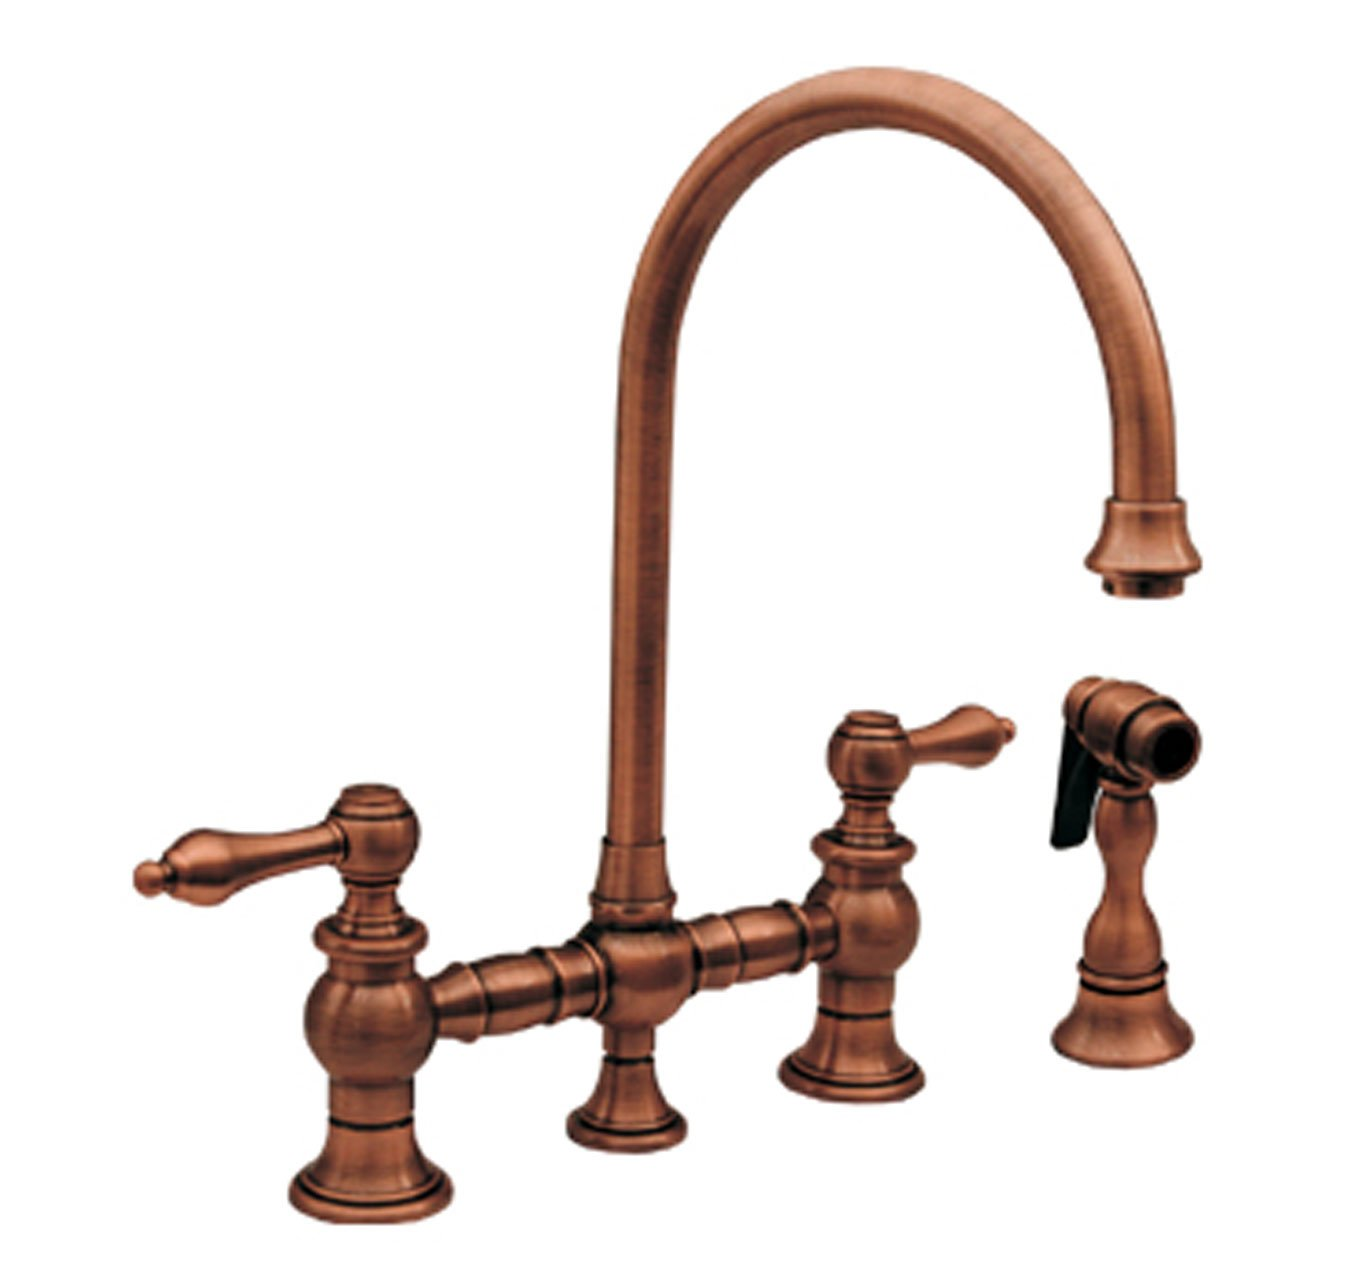 ideas discount with upper kitchen polishedchrome images antique style spray kohler without faucet prep best kitchens brushed sink copper side whitehaus hole vintage charming faucets finish taps tap